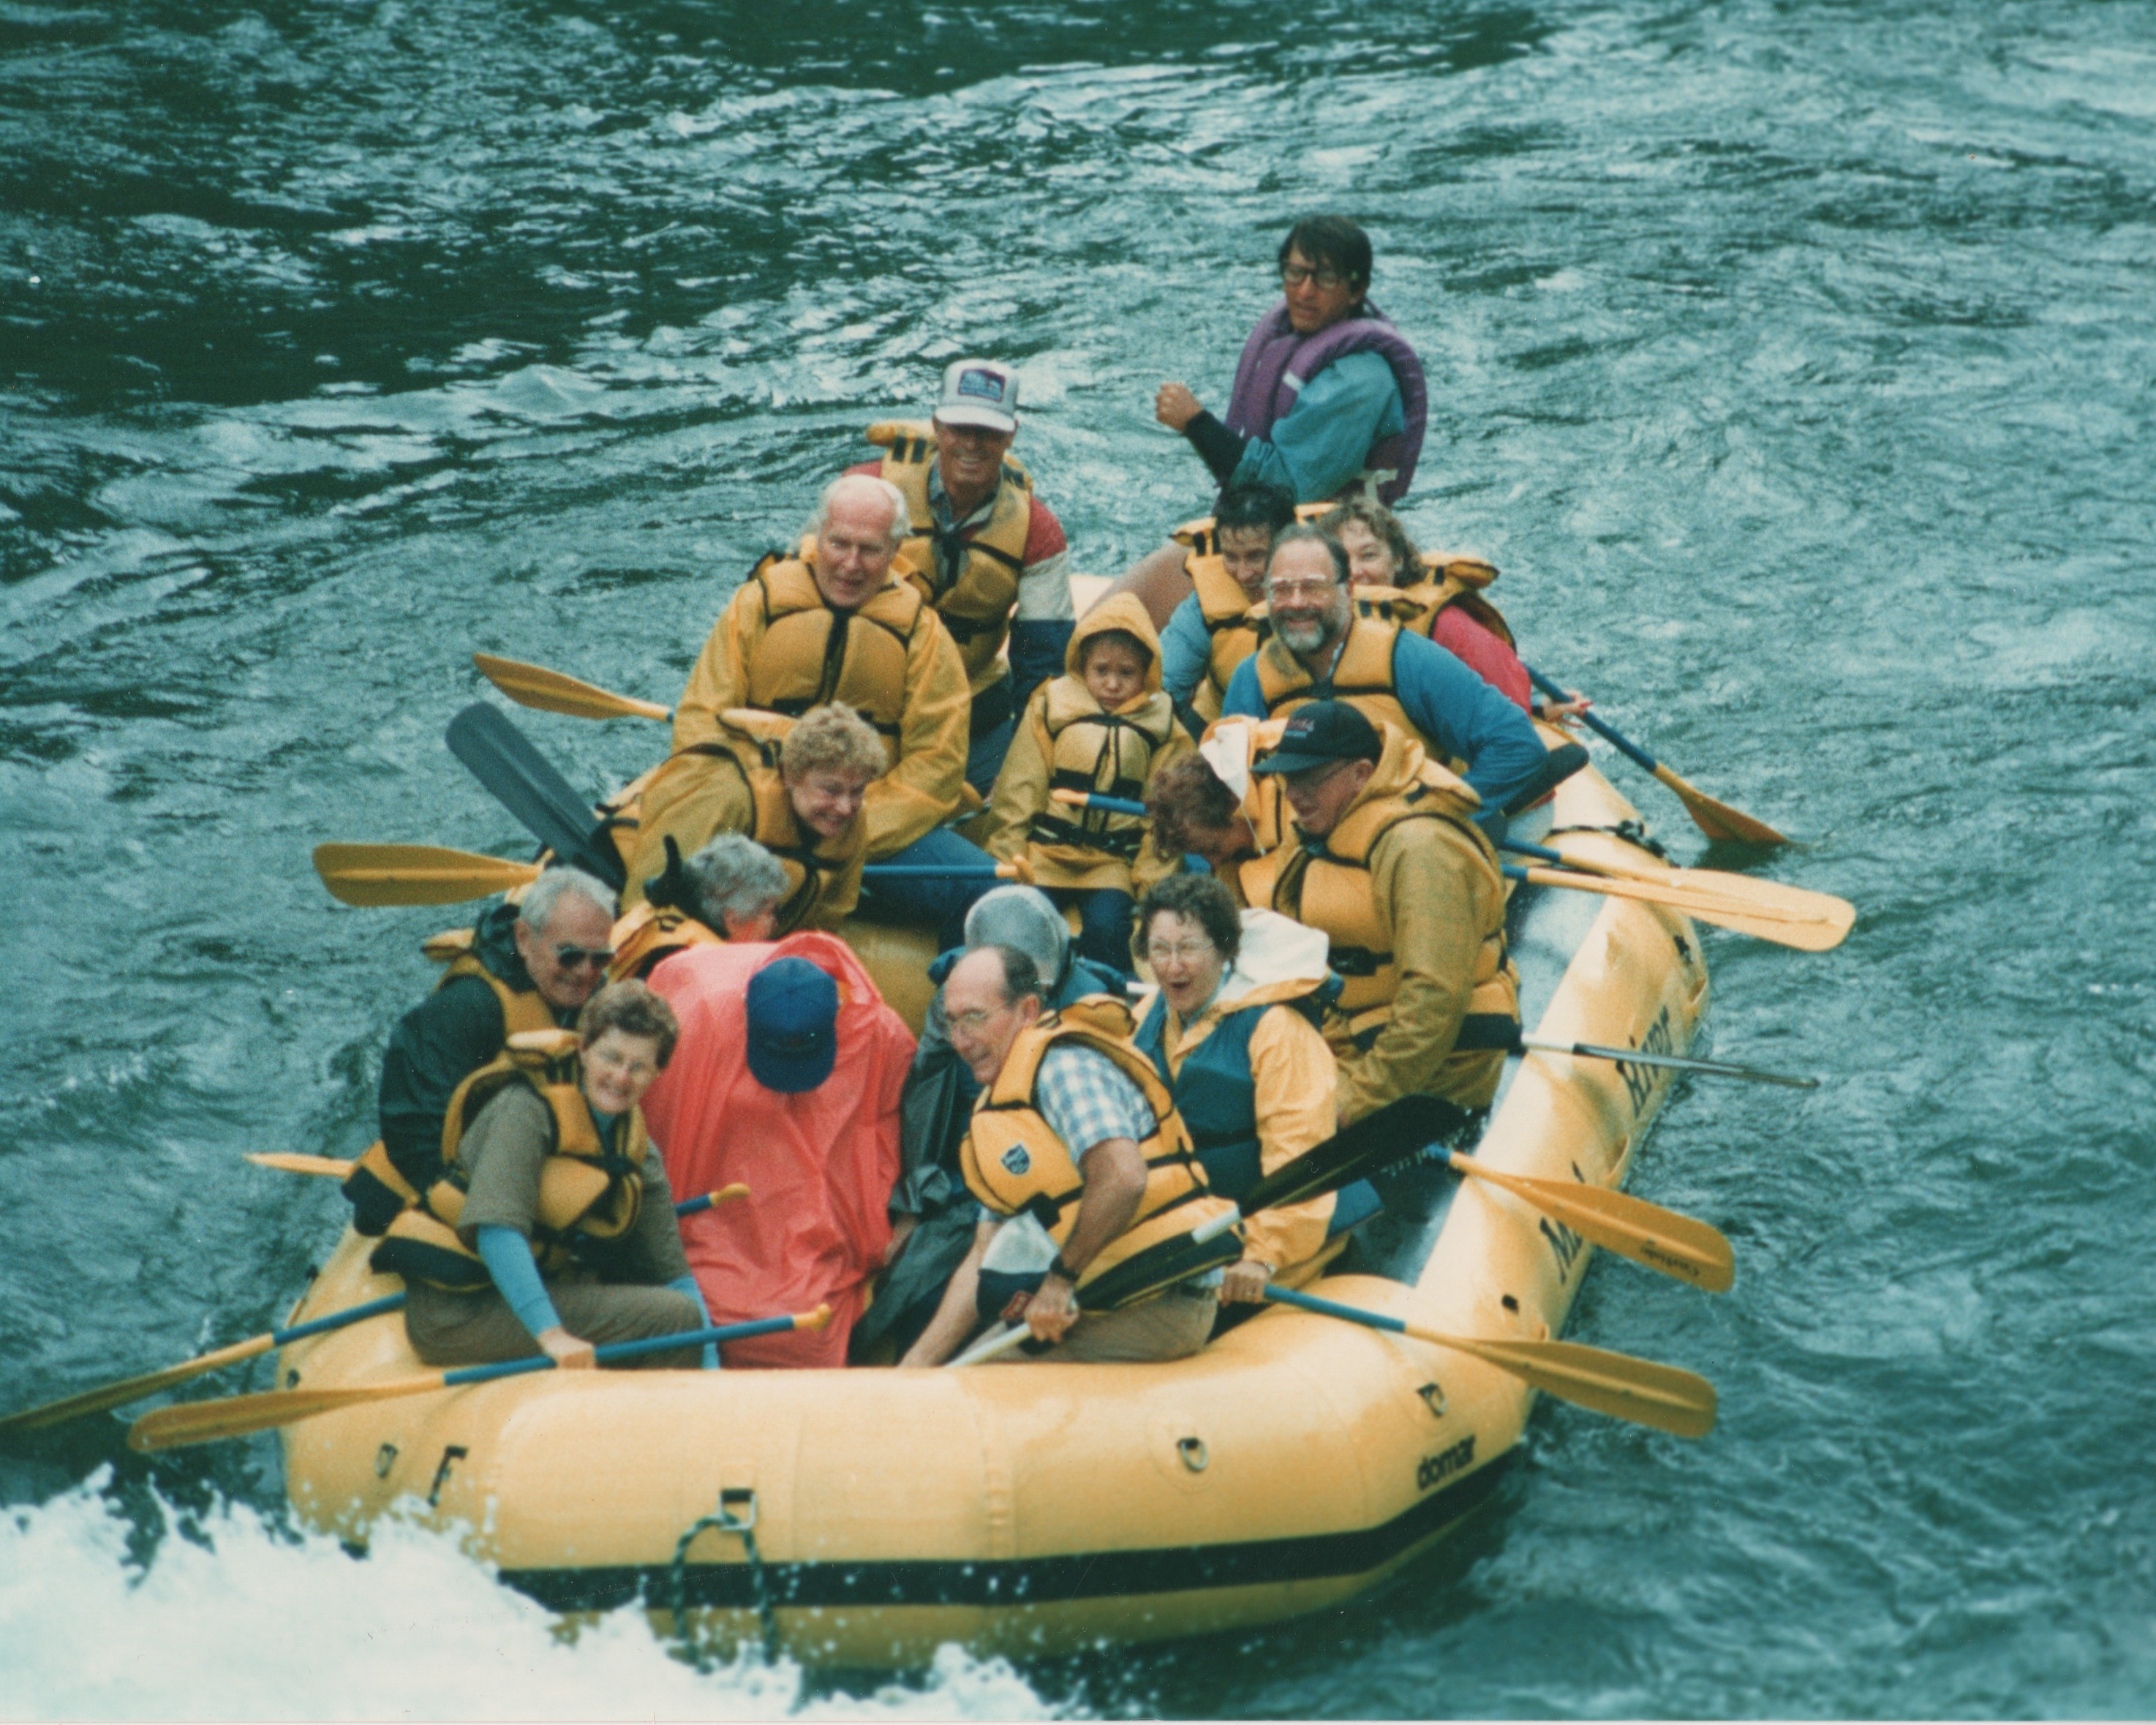 Photo of Parker guiding a raft full of paddlers